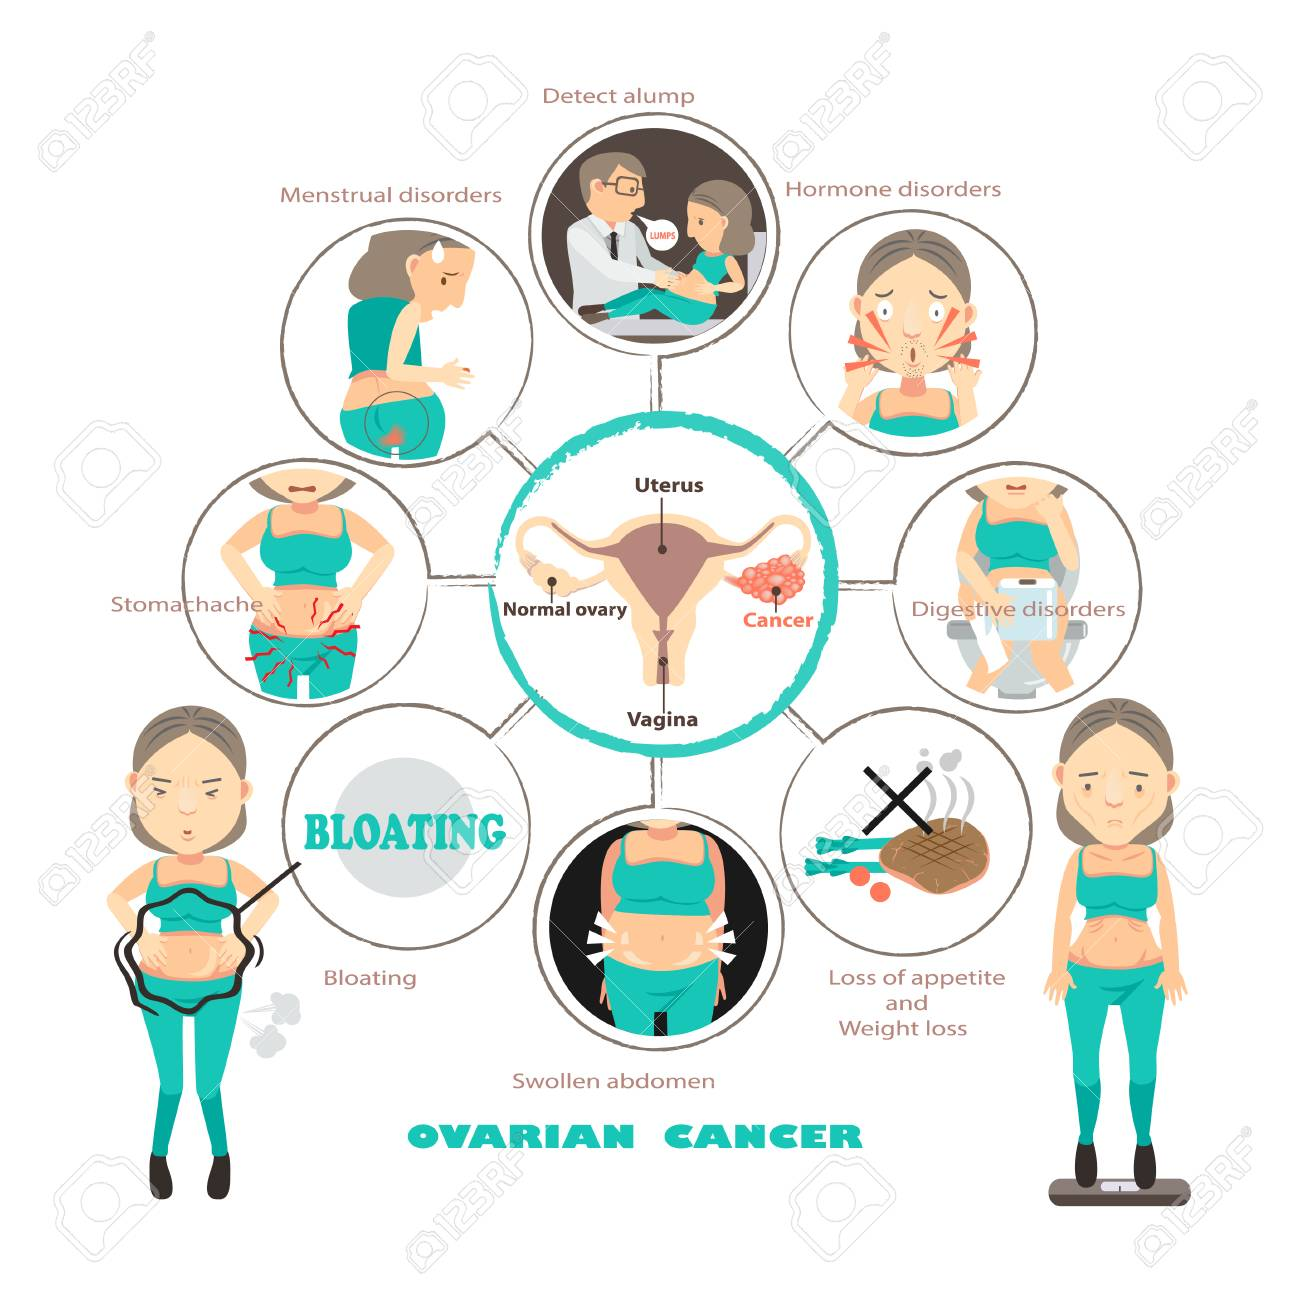 Symptoms of ovarian cancer in circles,info graphic vector illustration - 92939396